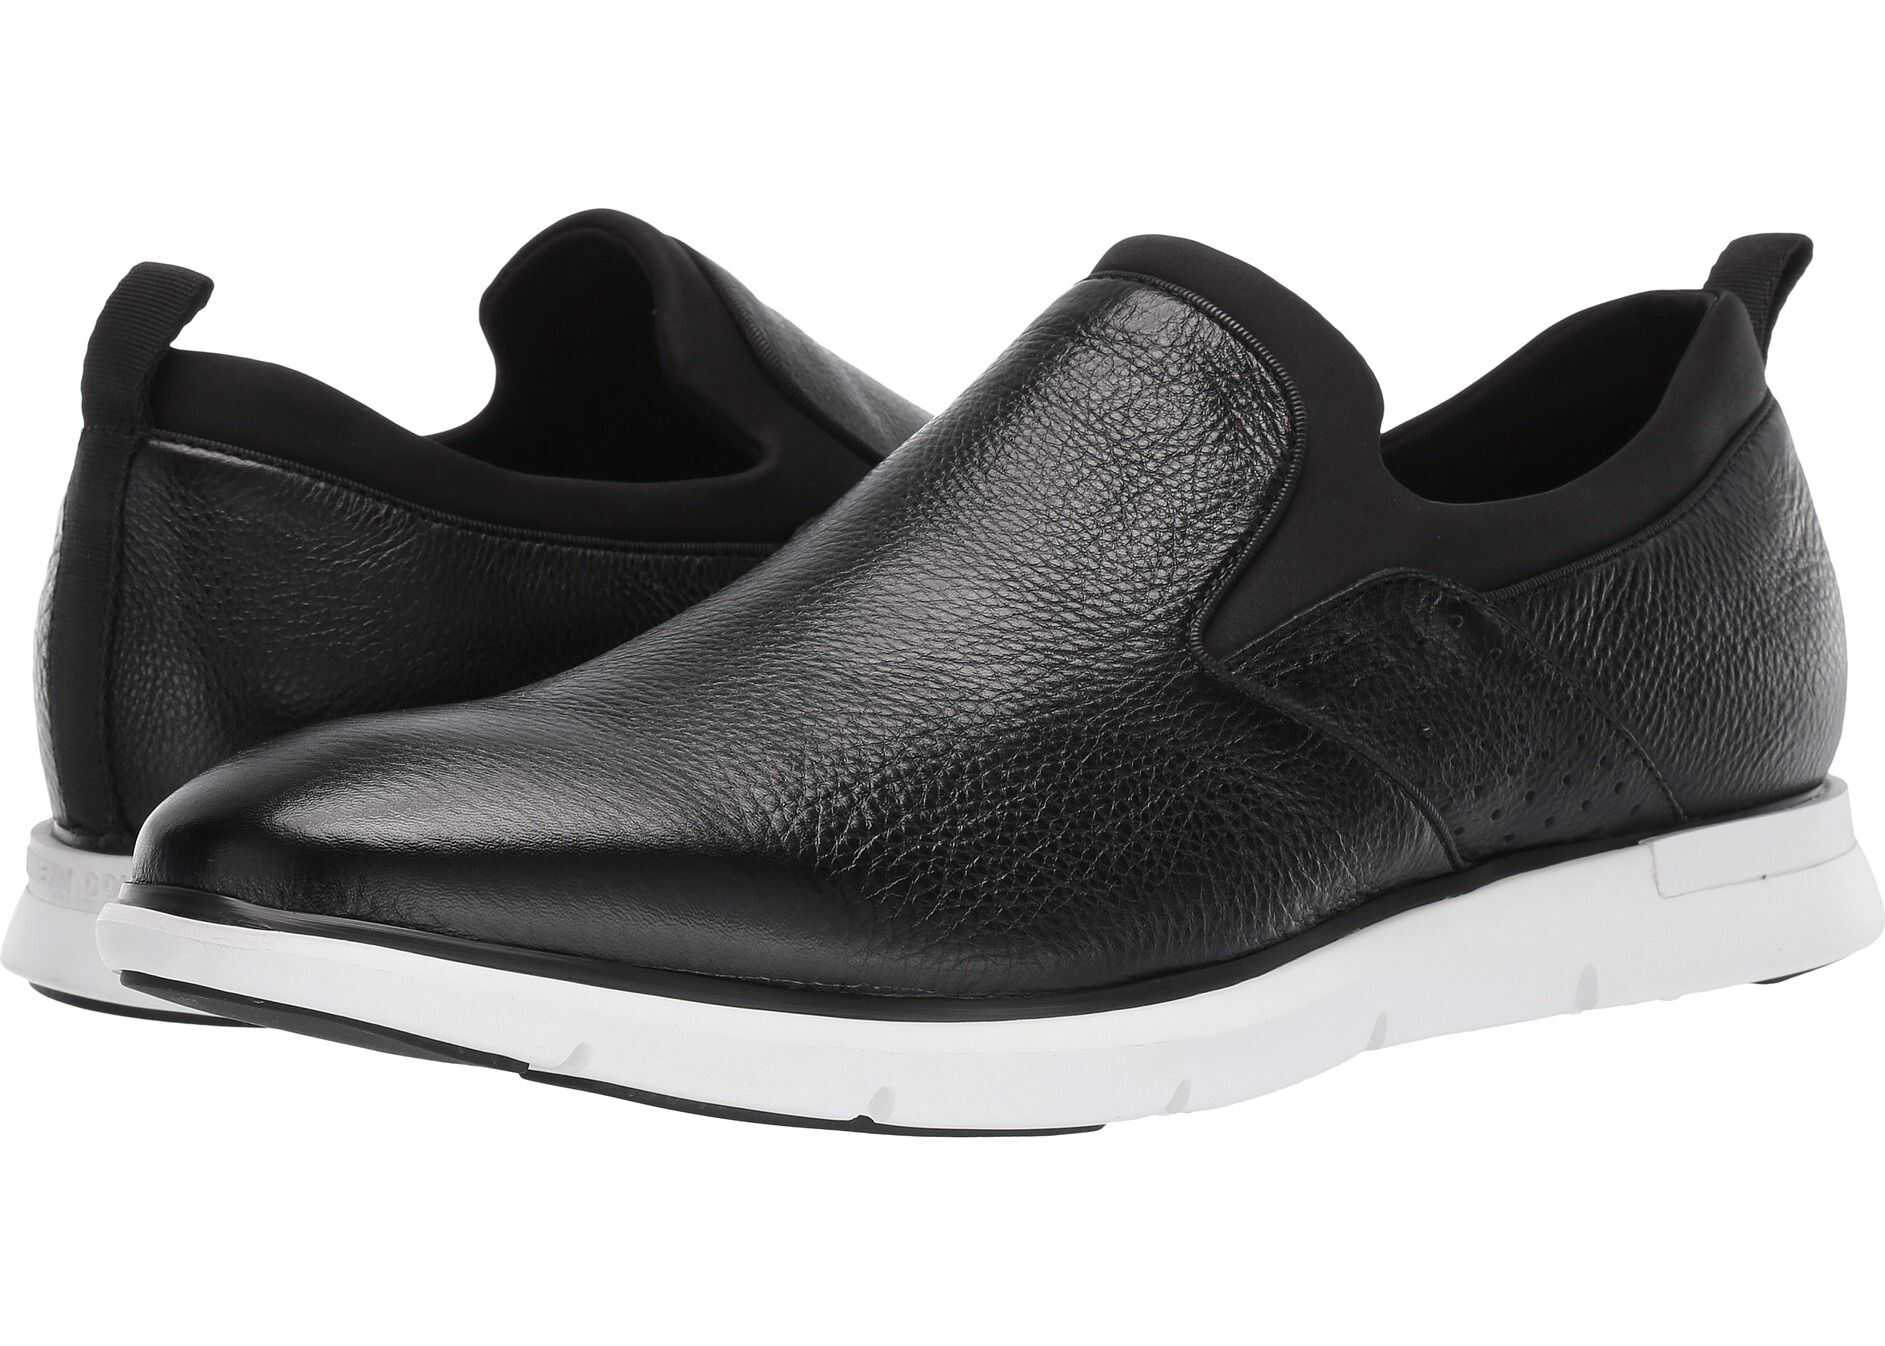 Kenneth Cole New York Dover Slip-On Black